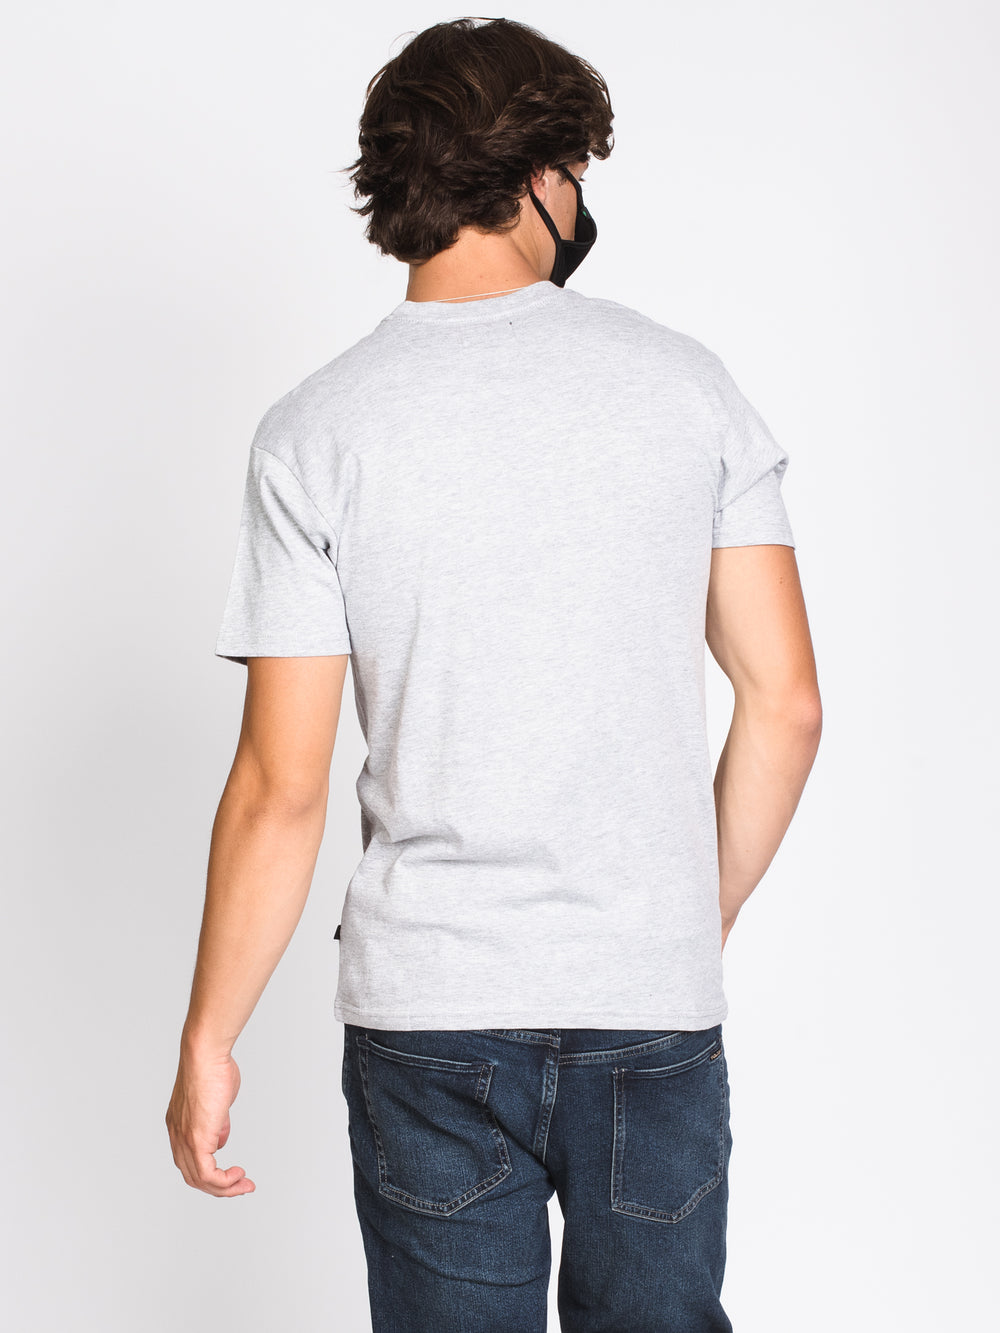 MENS JUST THE TIP SHORT SLEEVE T-SHIRT - HTHR GRY